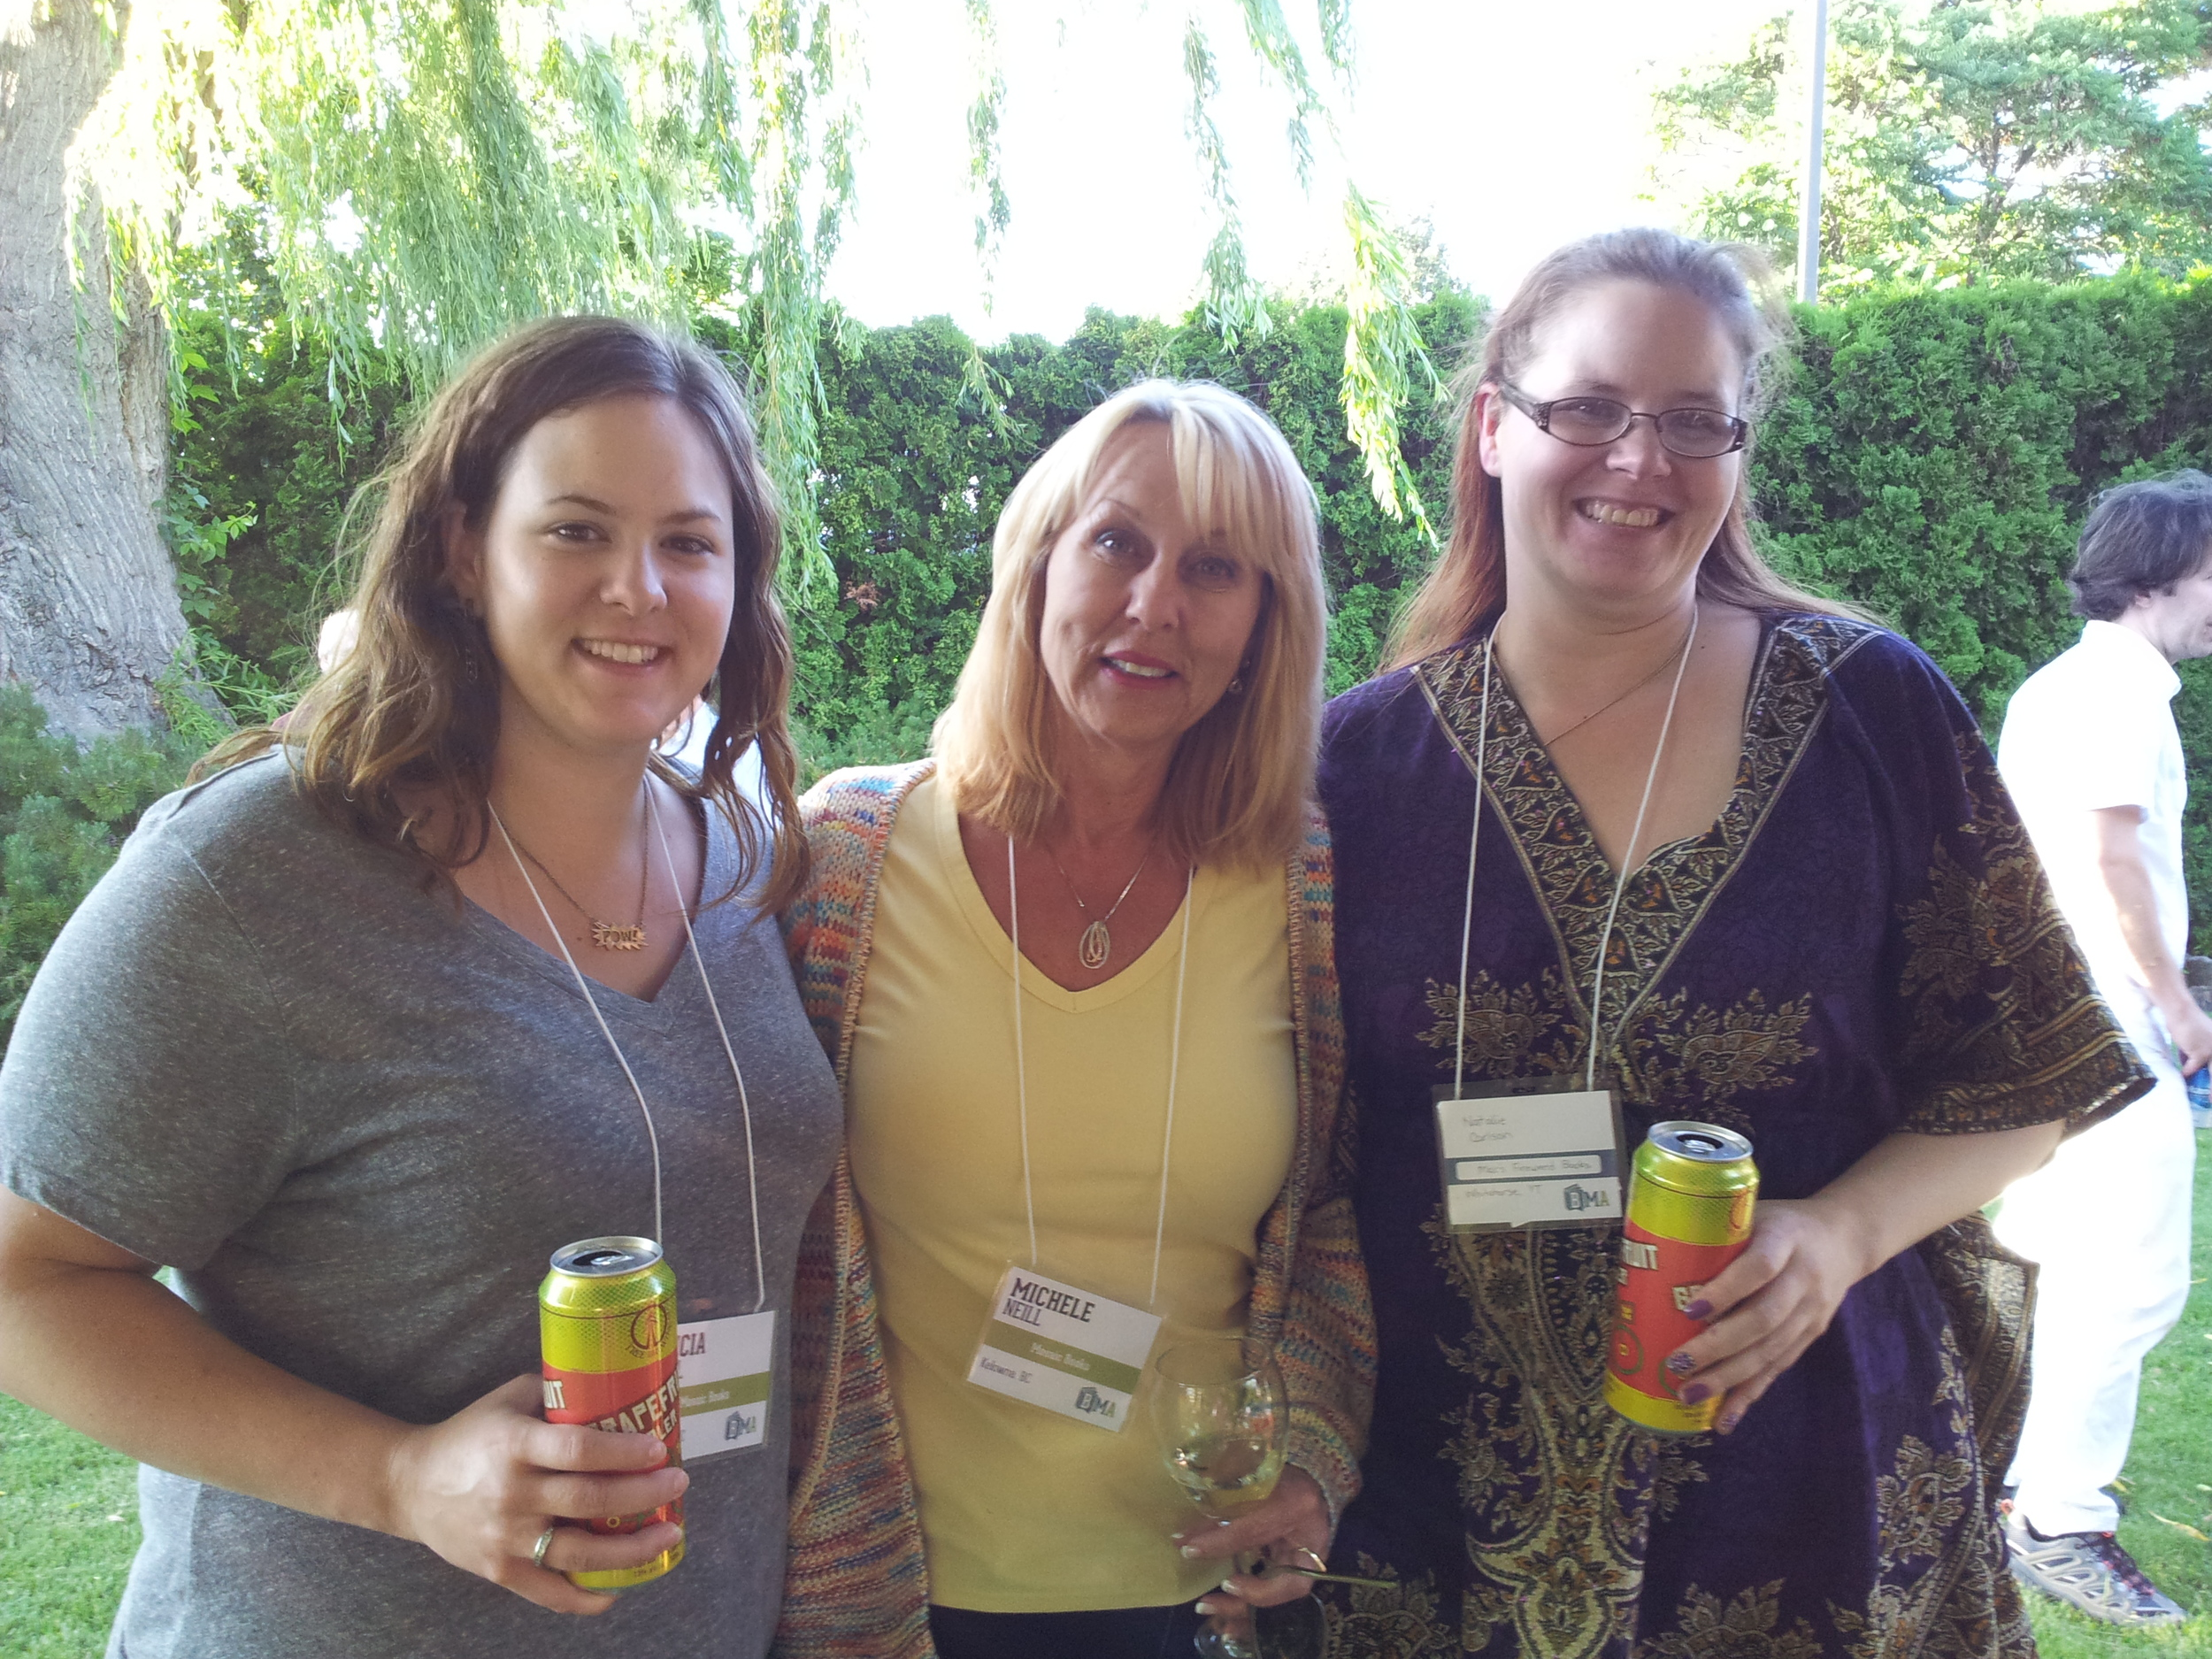 L to R: Alicia Neill (Mosaic Books), Michele Neill (Bookmanager), Natalie (Mac's Fireweed Bookstore)